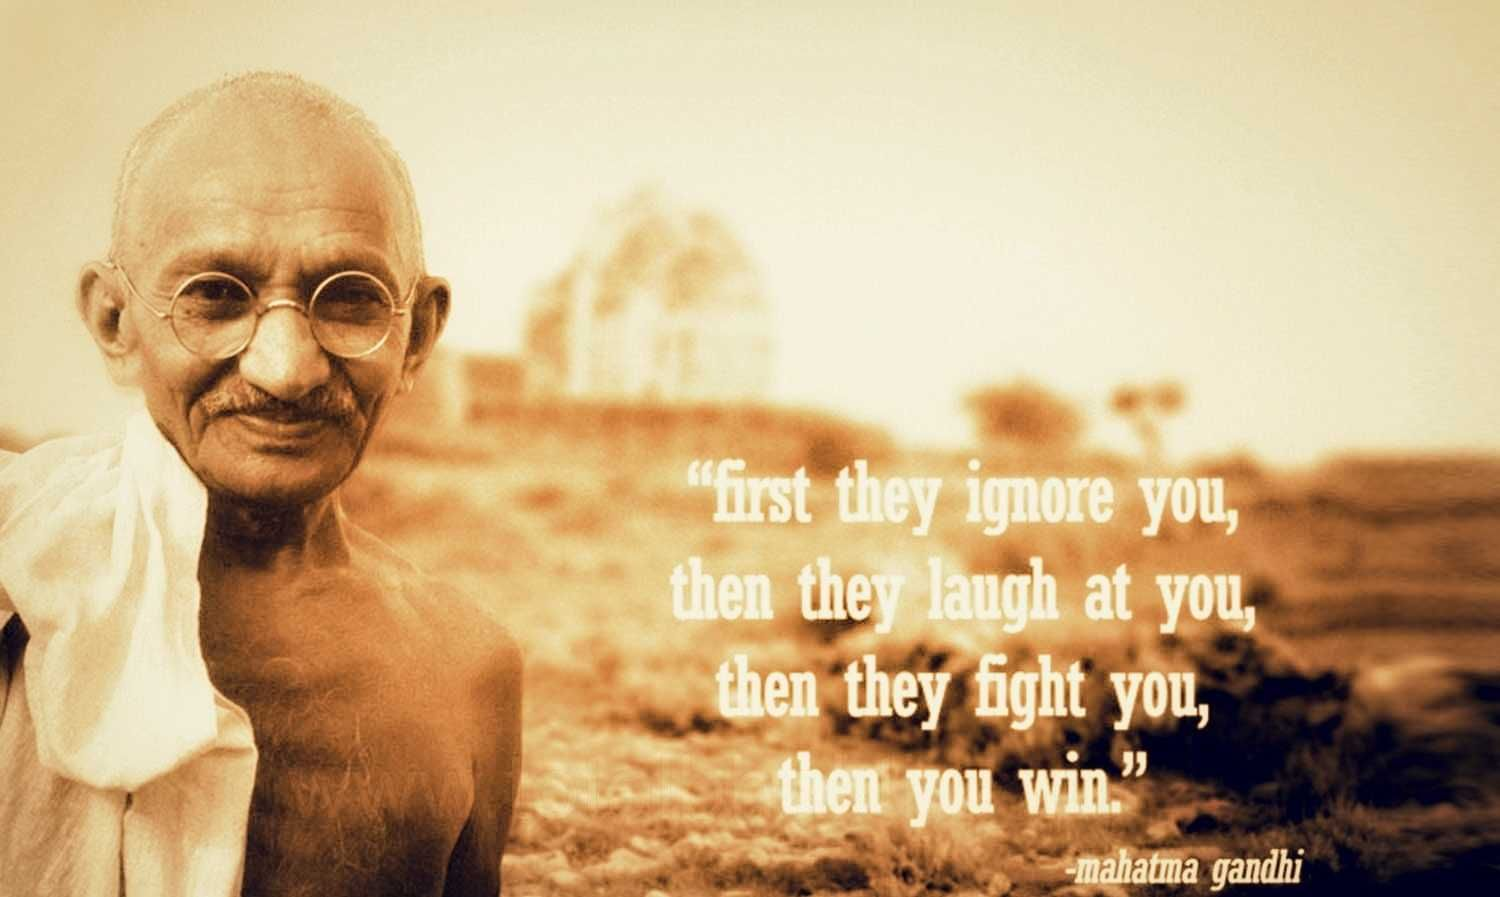 mahatma gandhi quotes hitfull com incredible 21 mahatma gandhi quotes hitfull com